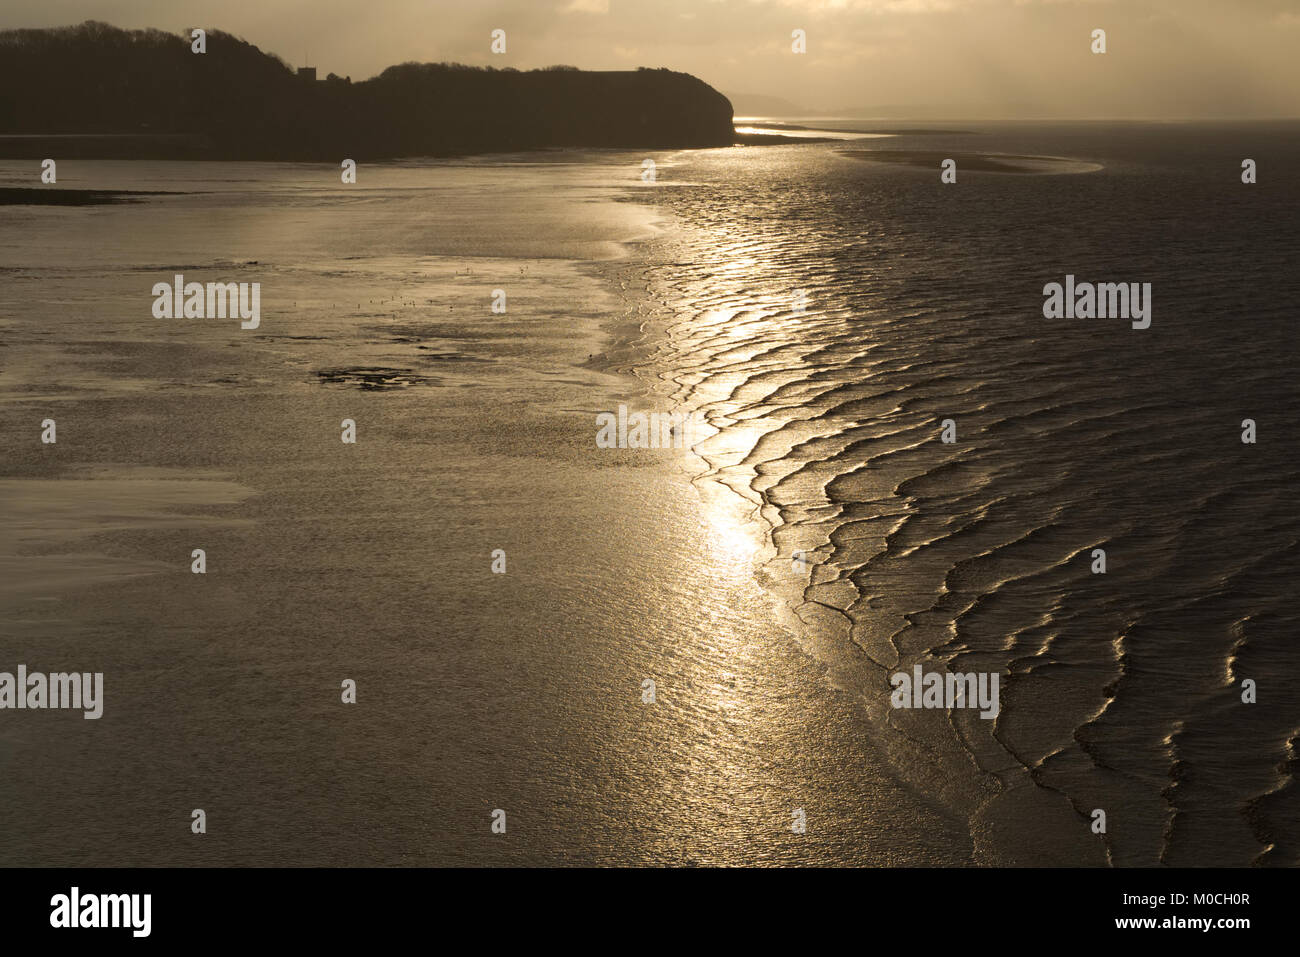 Waves lapping on the beach at sunset on Clevedon beach, Calm, relaxing, peaceful concept - Stock Image